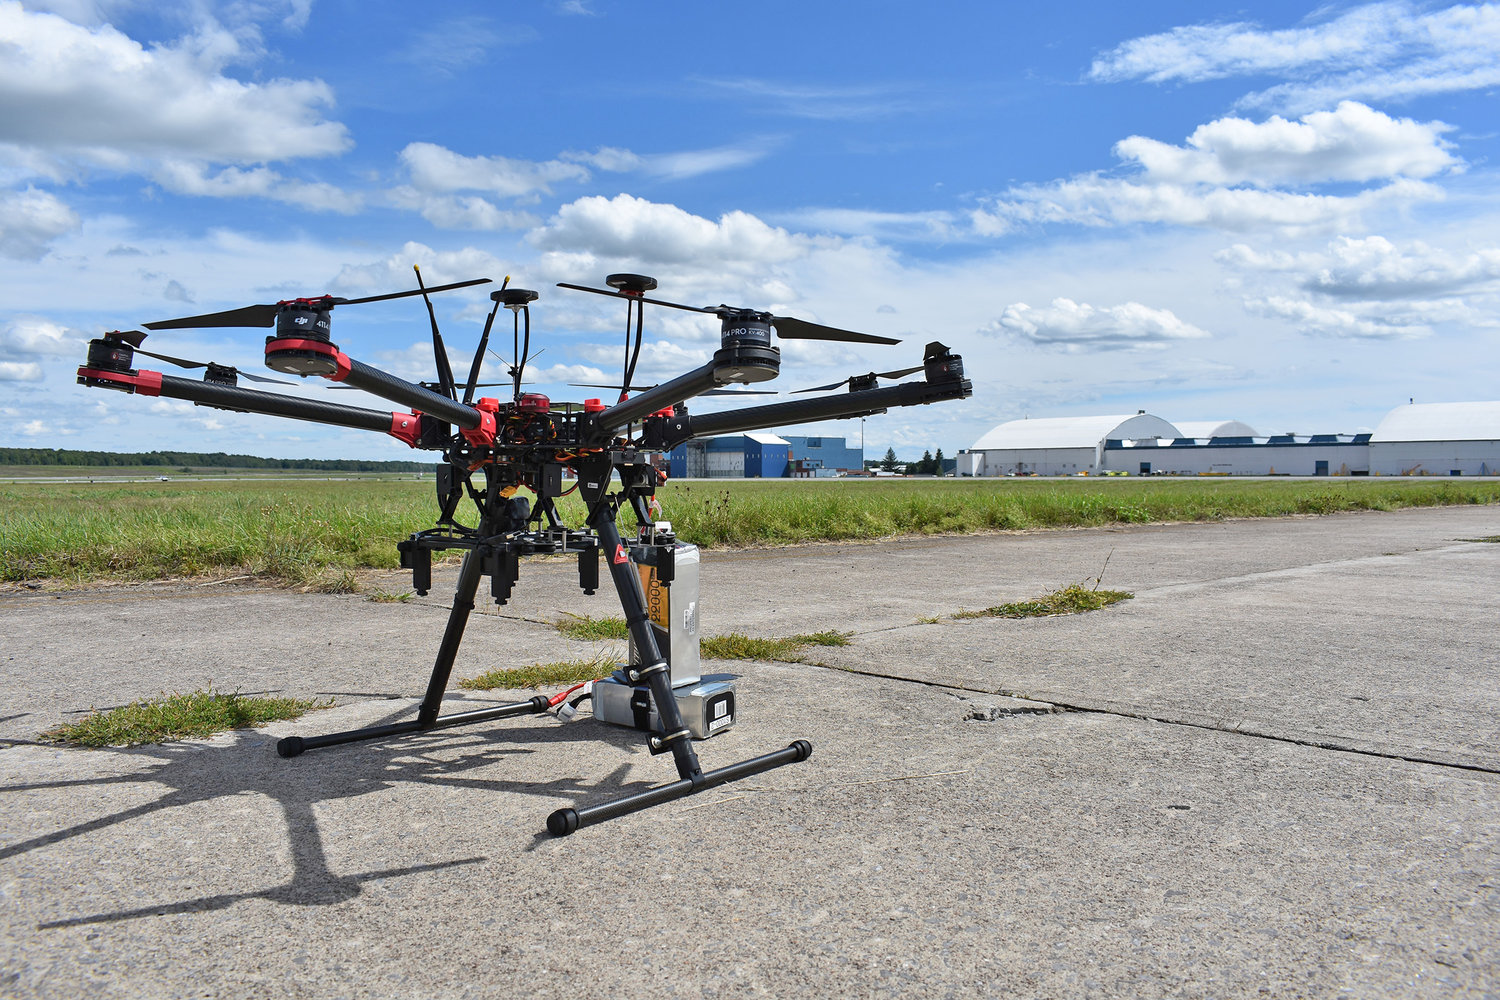 ON THE FOREFRONT — A drone sits on the runway at the Griffiss Business and Technology Park in this file photo. Live flights are set to begin this month at the Griffiss test site, one of two sites selected nationally, in the second phase of a federal program to develop a high-density air traffic control system for drones.